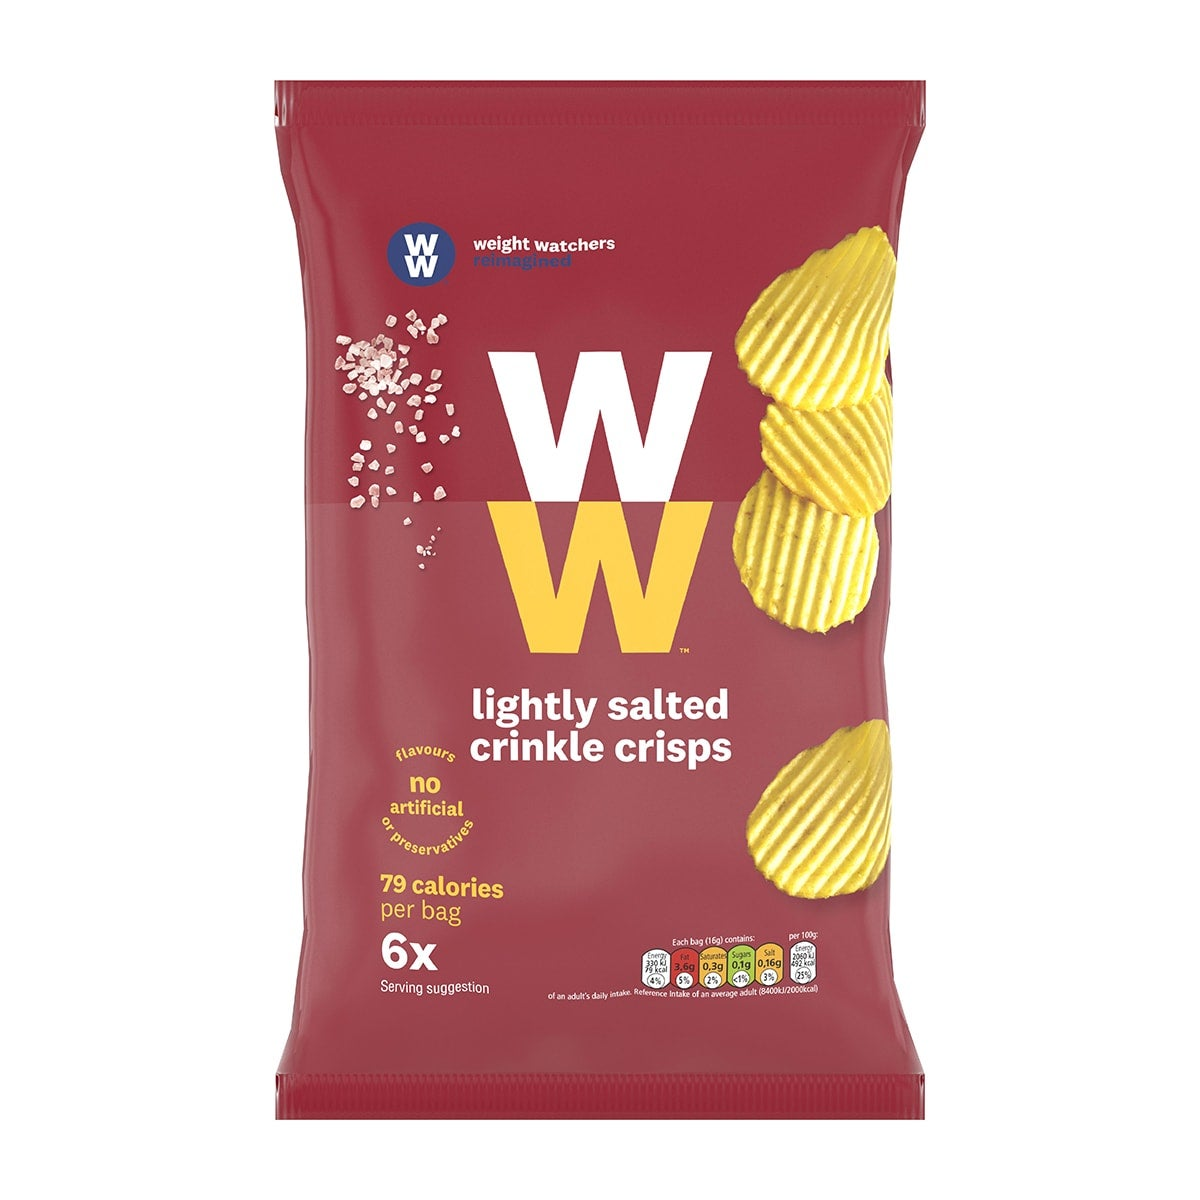 Pack of 6, WW Lightly Salted Crinkle Cut Crisps, contain at least 30% less fat than standard crisps, lighted salted, 2 SmartPoints values per bag, suitable for vegetarians